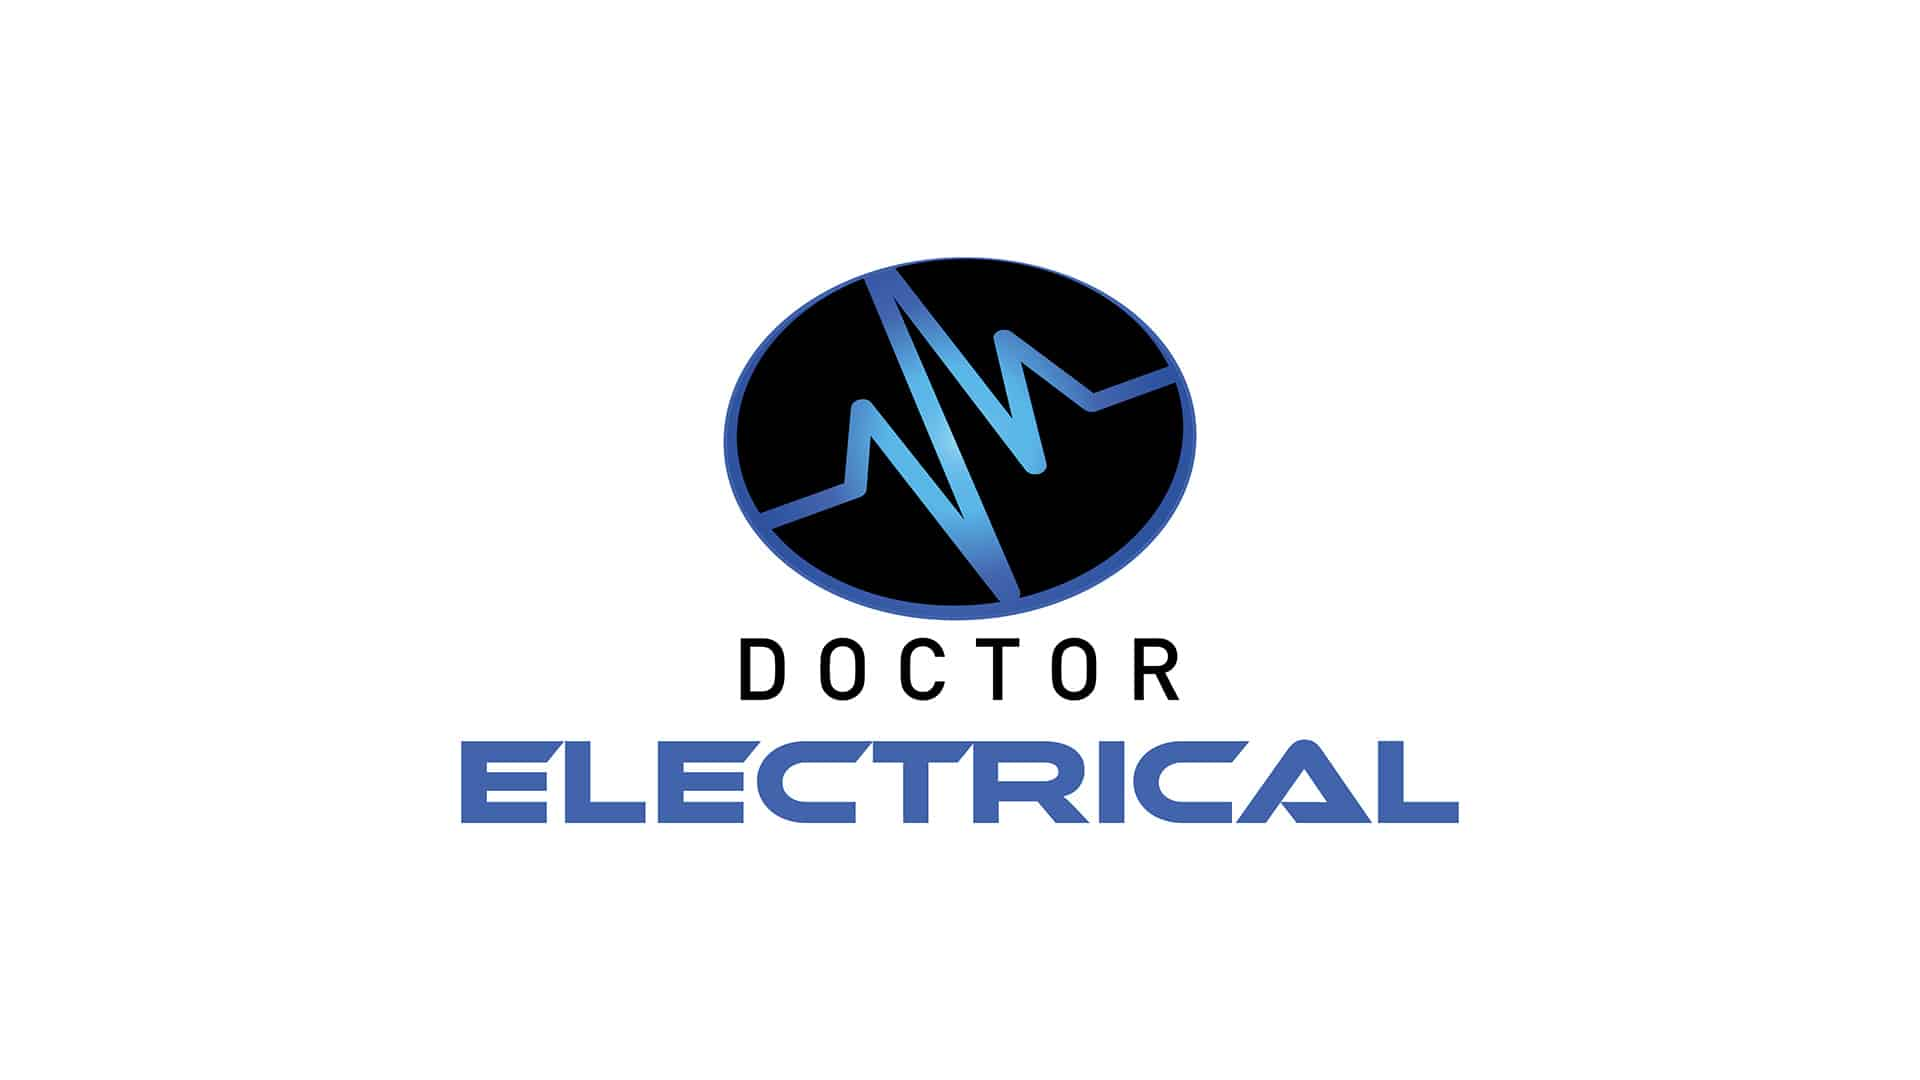 Doctor Electrical Image 4